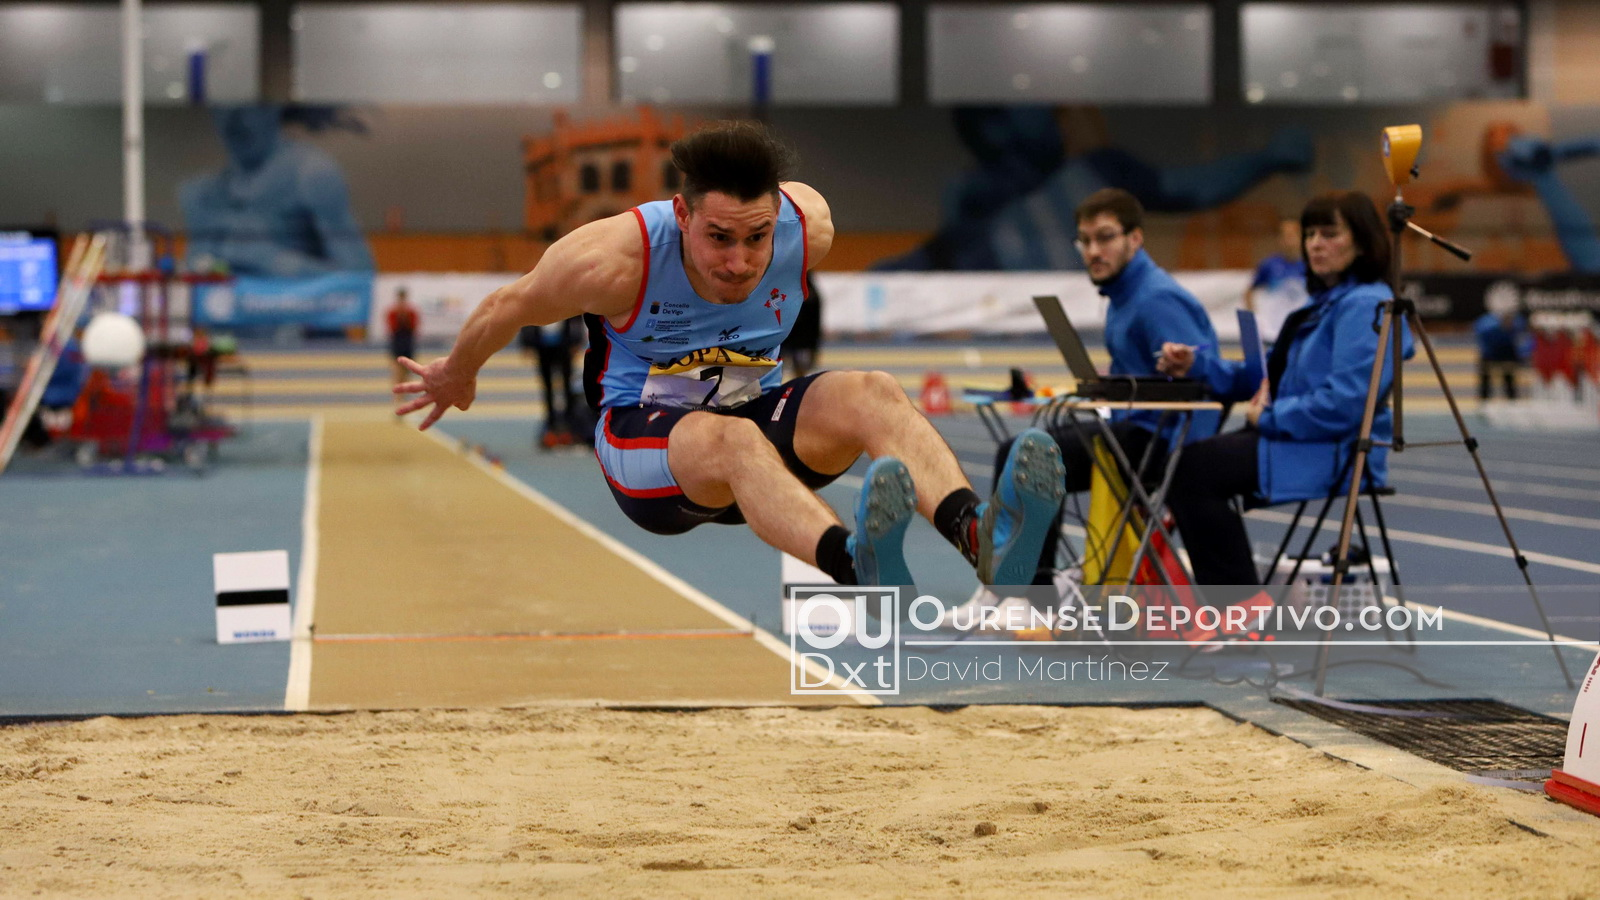 Atletismo Expourense Celta Foto David Martinez